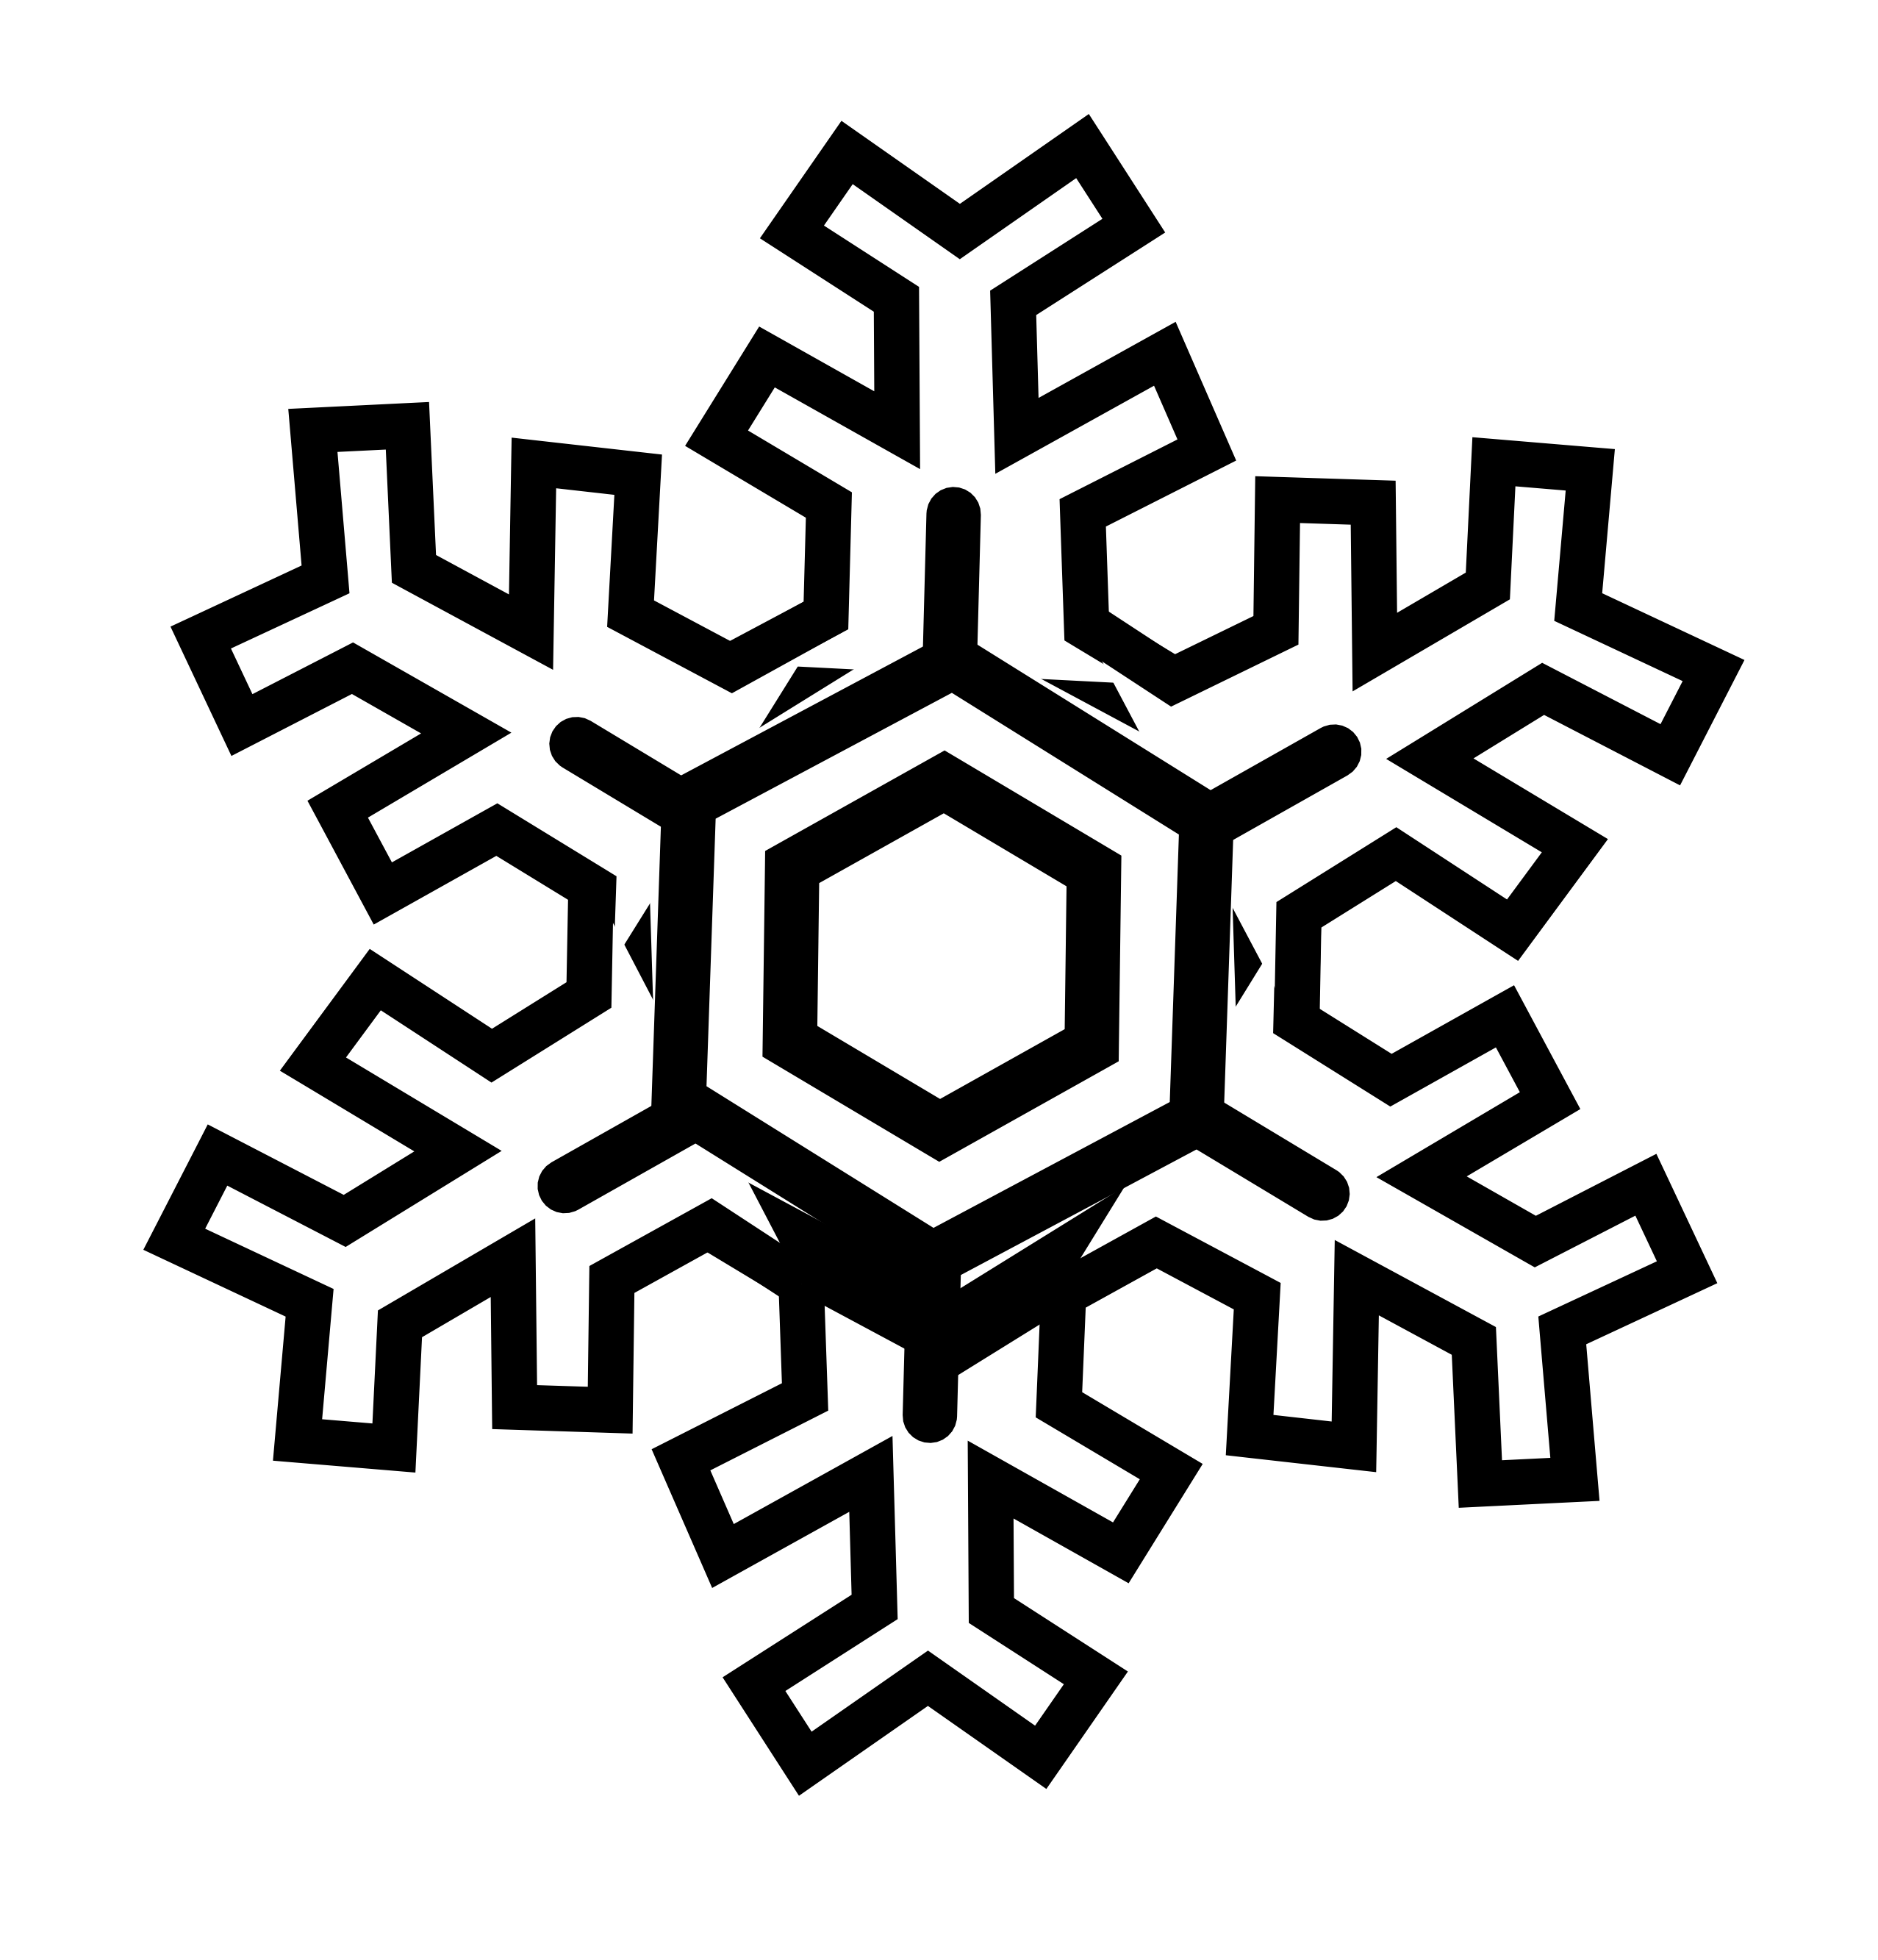 Clipart snowflake purple jpg freeuse library Snowflake Clipart Black And White | Clipart Panda - Free Clipart Images jpg freeuse library